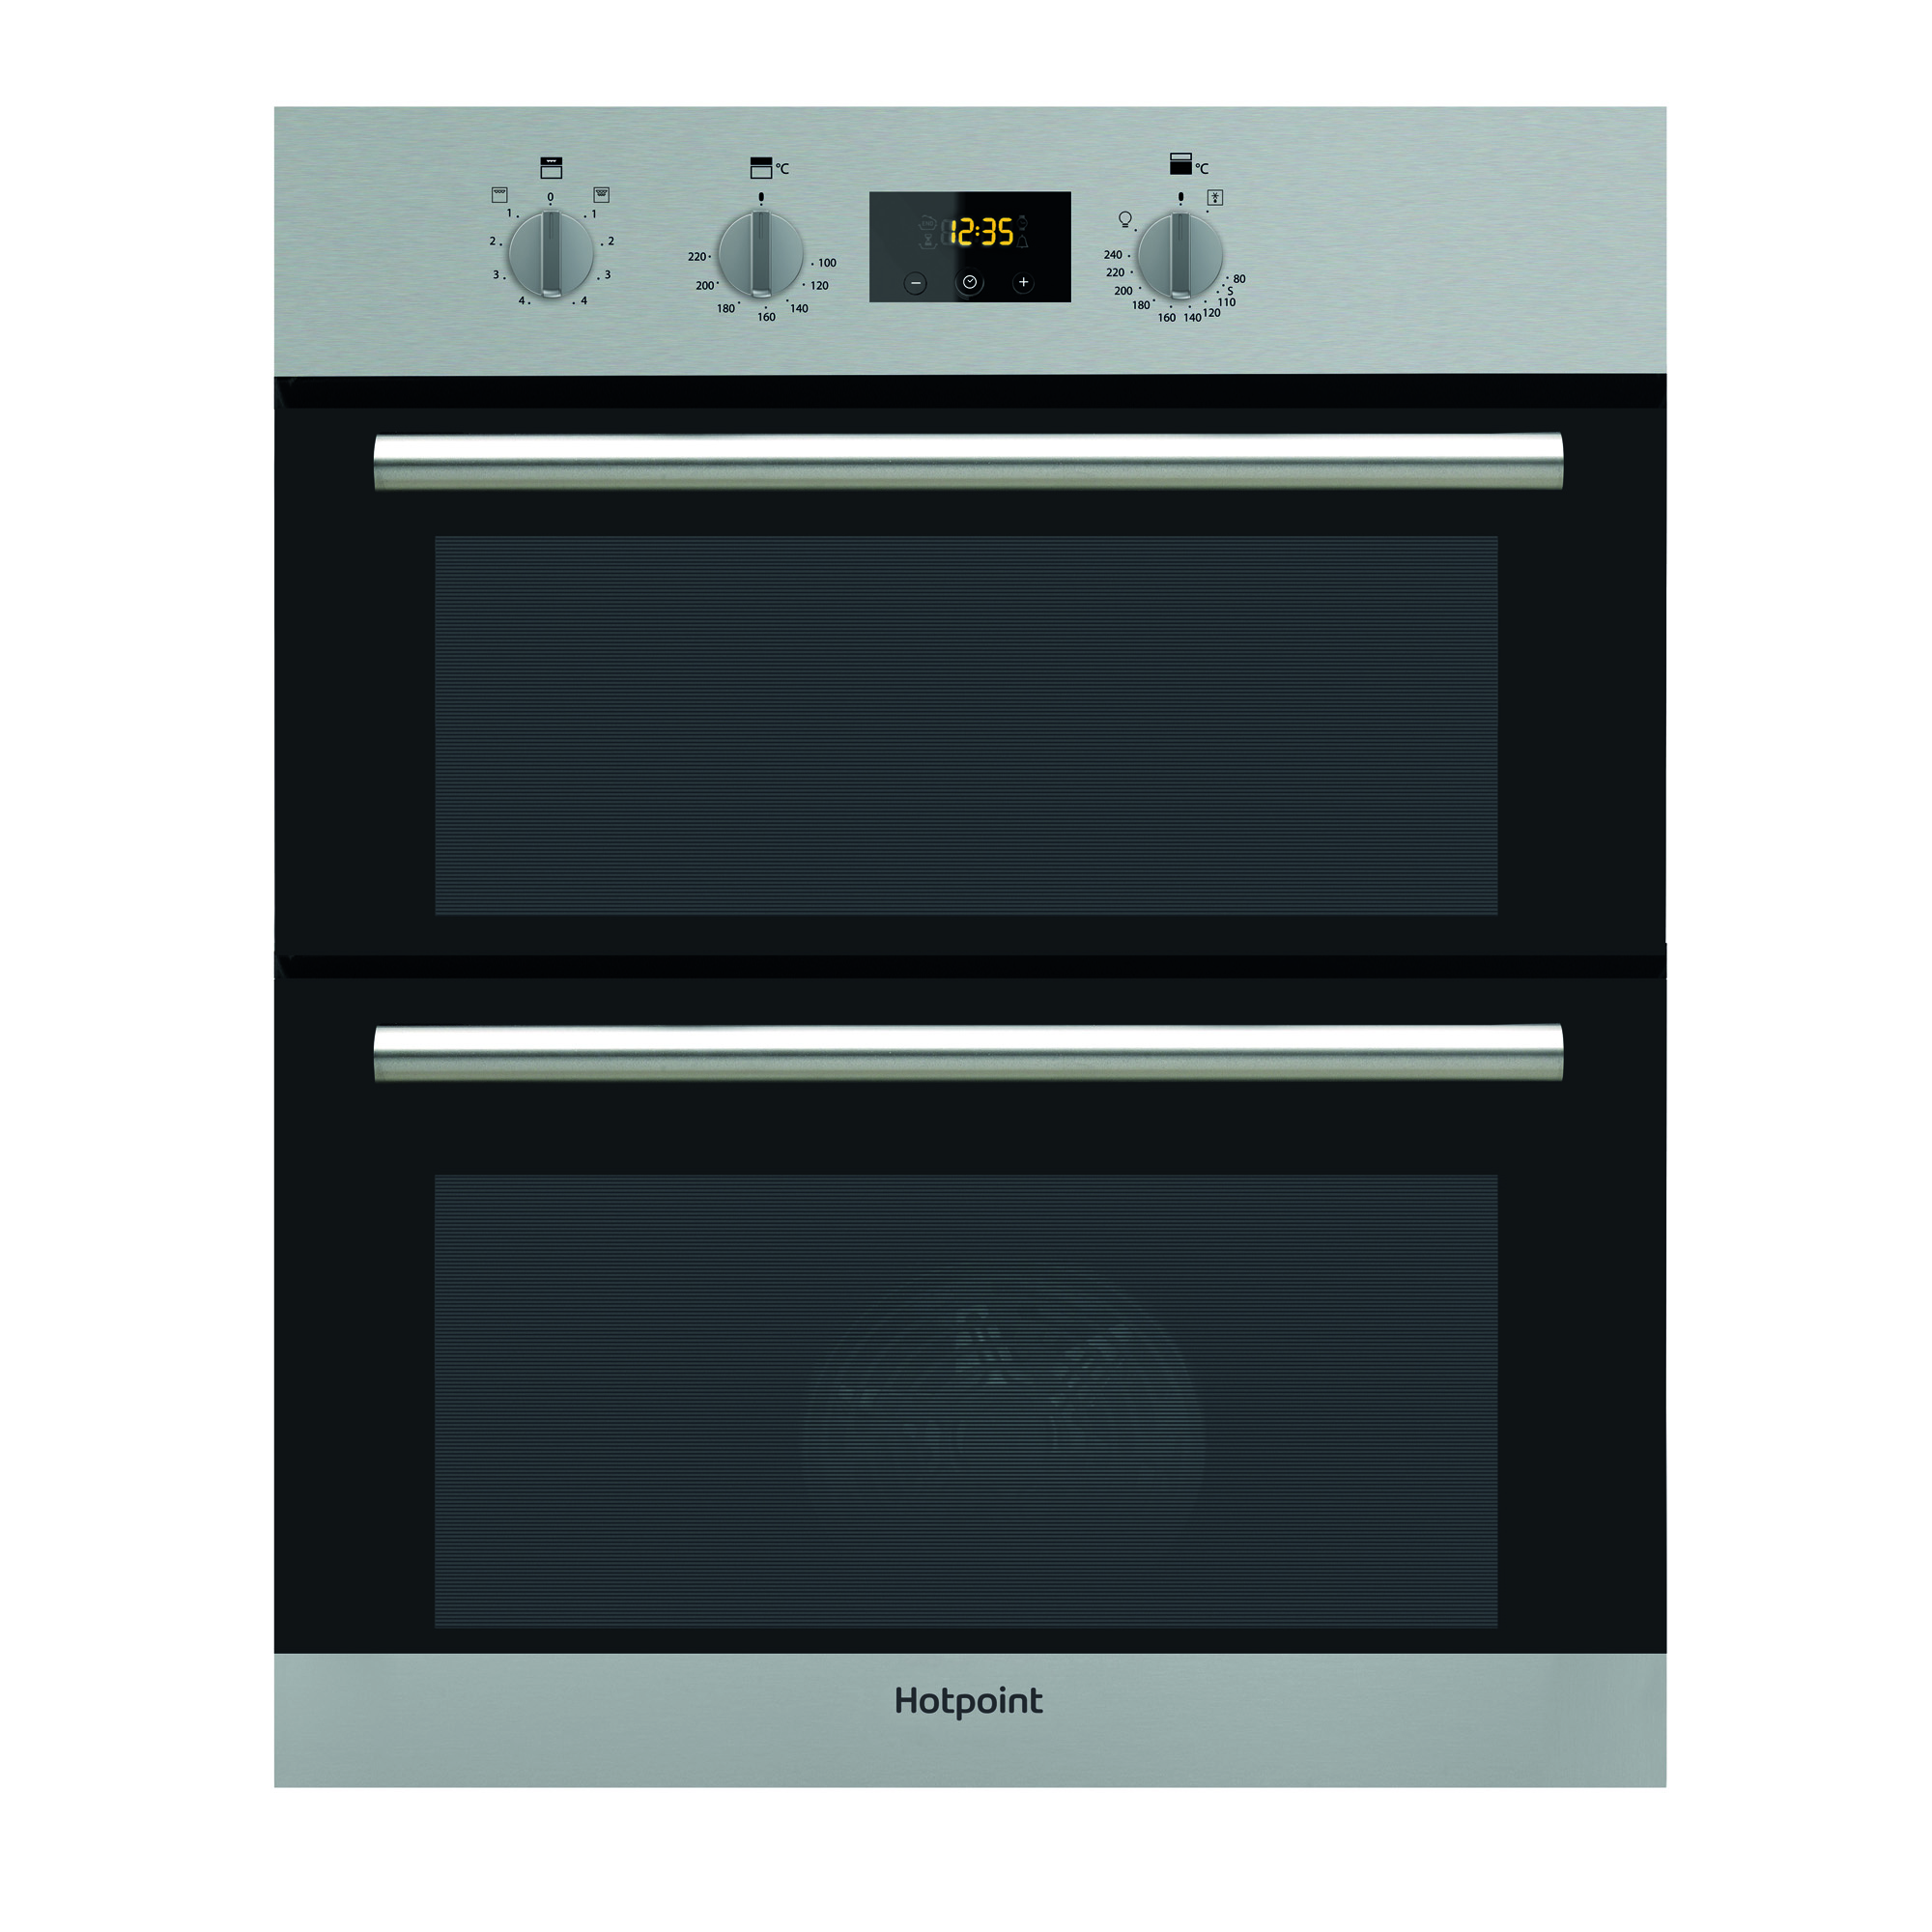 Hotpoint Du2 540 Ix 597mm Electric Built In Double Oven